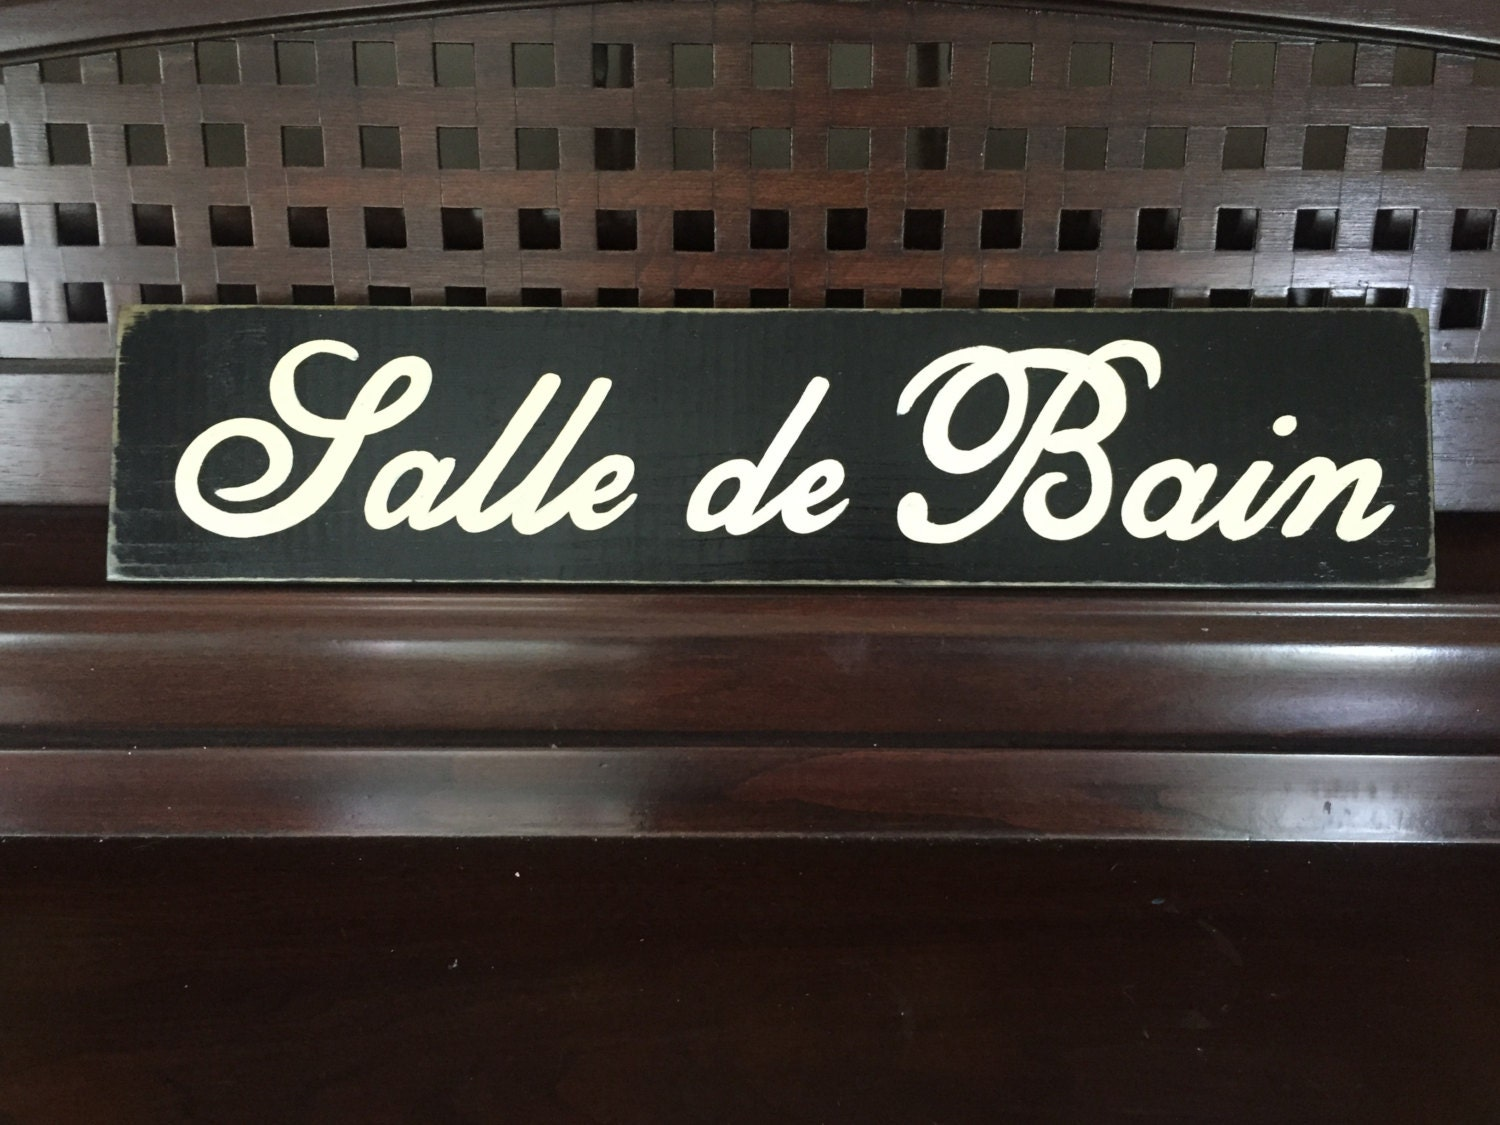 salle de bain paris apt french chic shabby bathroom sign. Black Bedroom Furniture Sets. Home Design Ideas